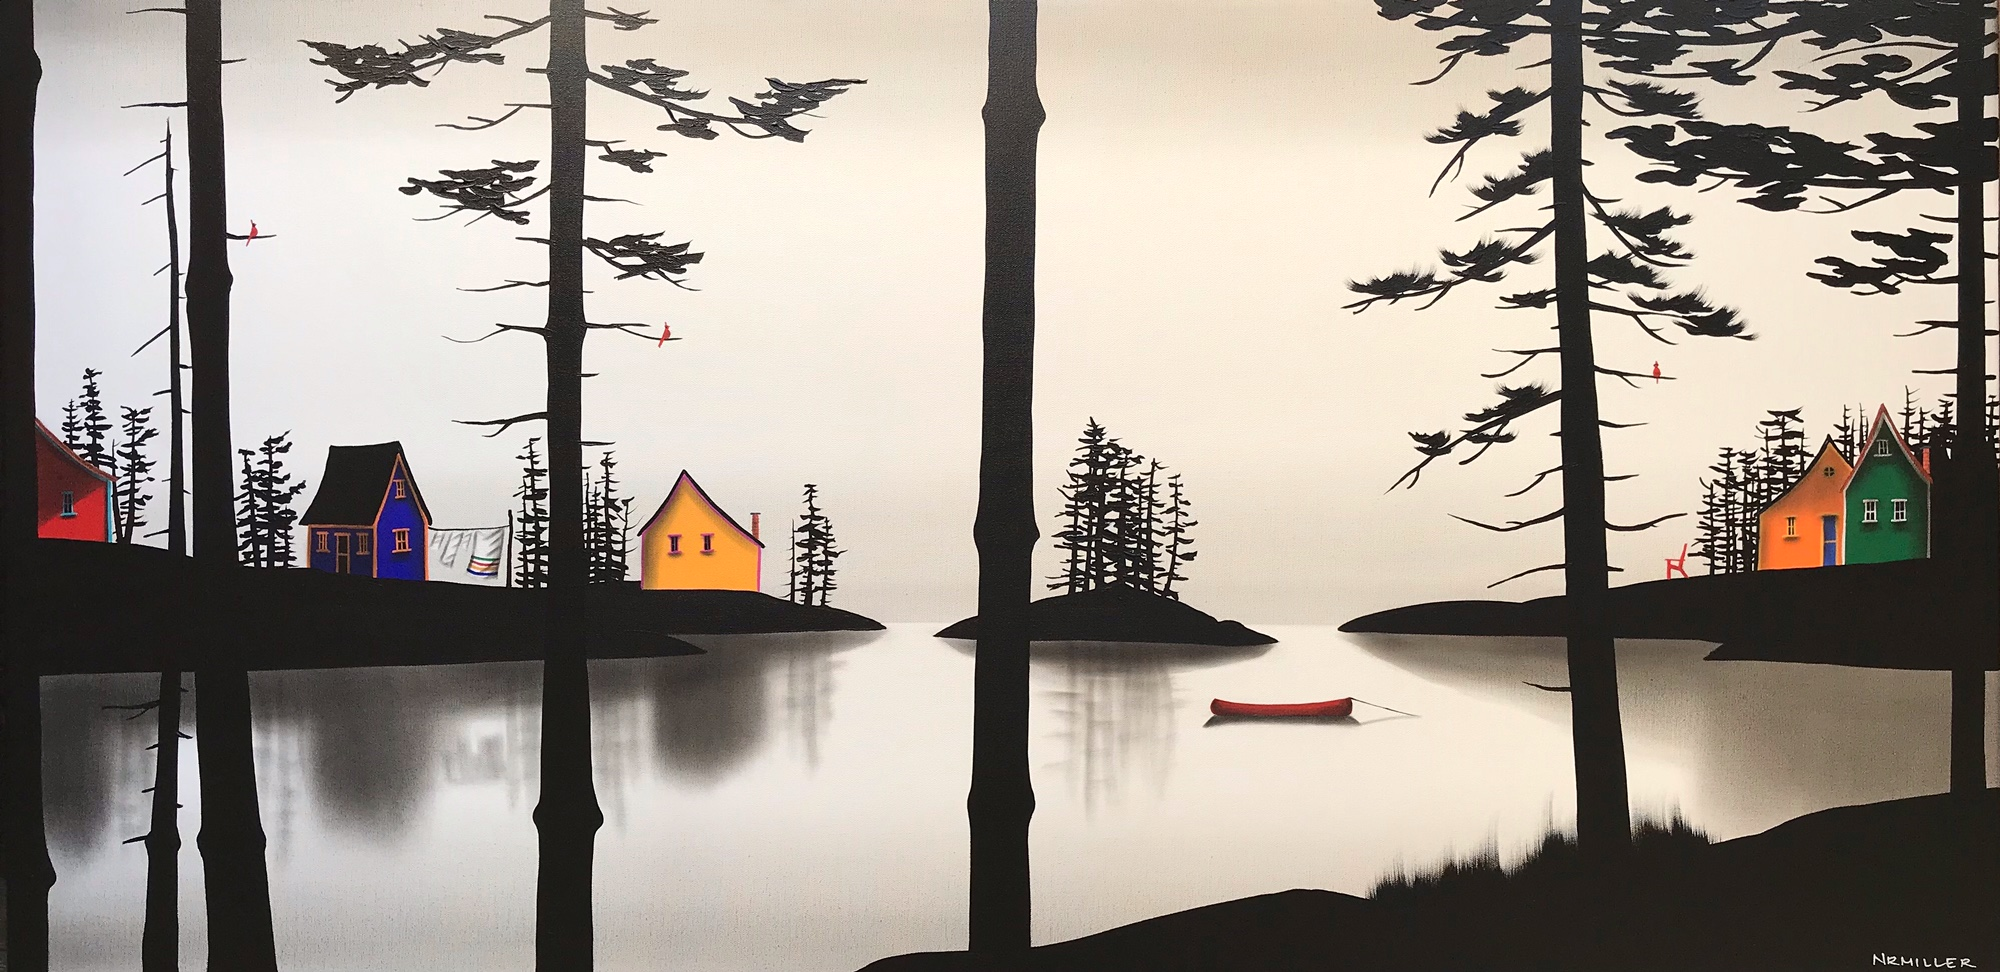 Cottage Country Dreamin', mixed media landscape painting by Natasha Miller | Effusion Art Gallery + Cast Glass Studio, Invermere BC